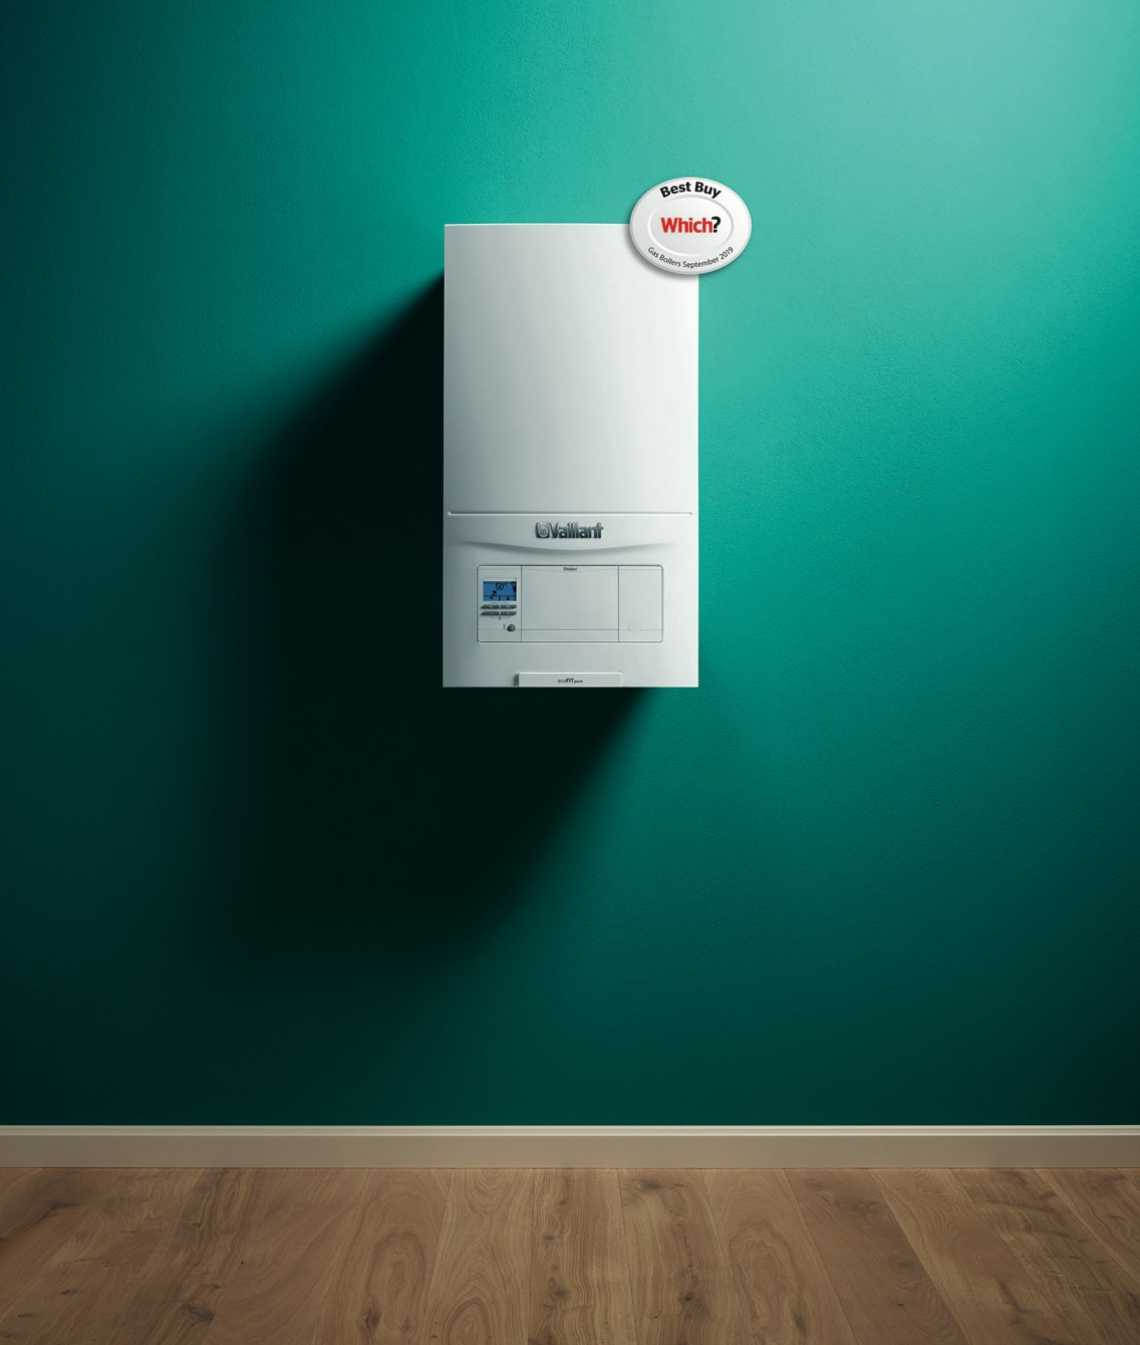 New Boiler Installations  Worcester And Vaillant Accredited Installers